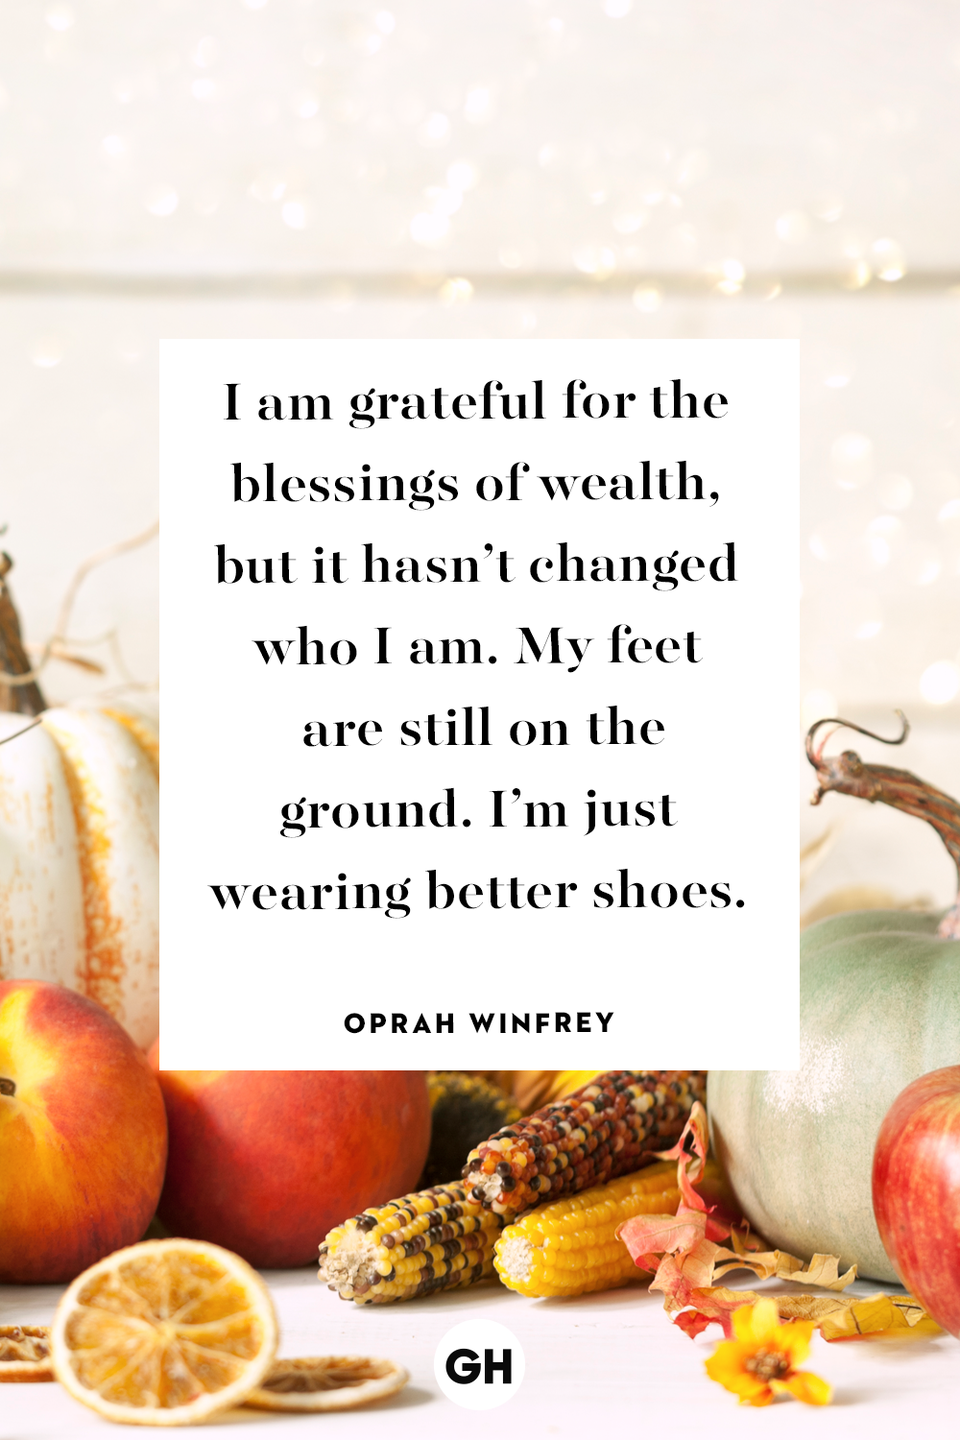 <p>I am grateful for the blessings of wealth, but it hasn't changed who I am. My feet are still on the ground. I'm just wearing better shoes.</p>